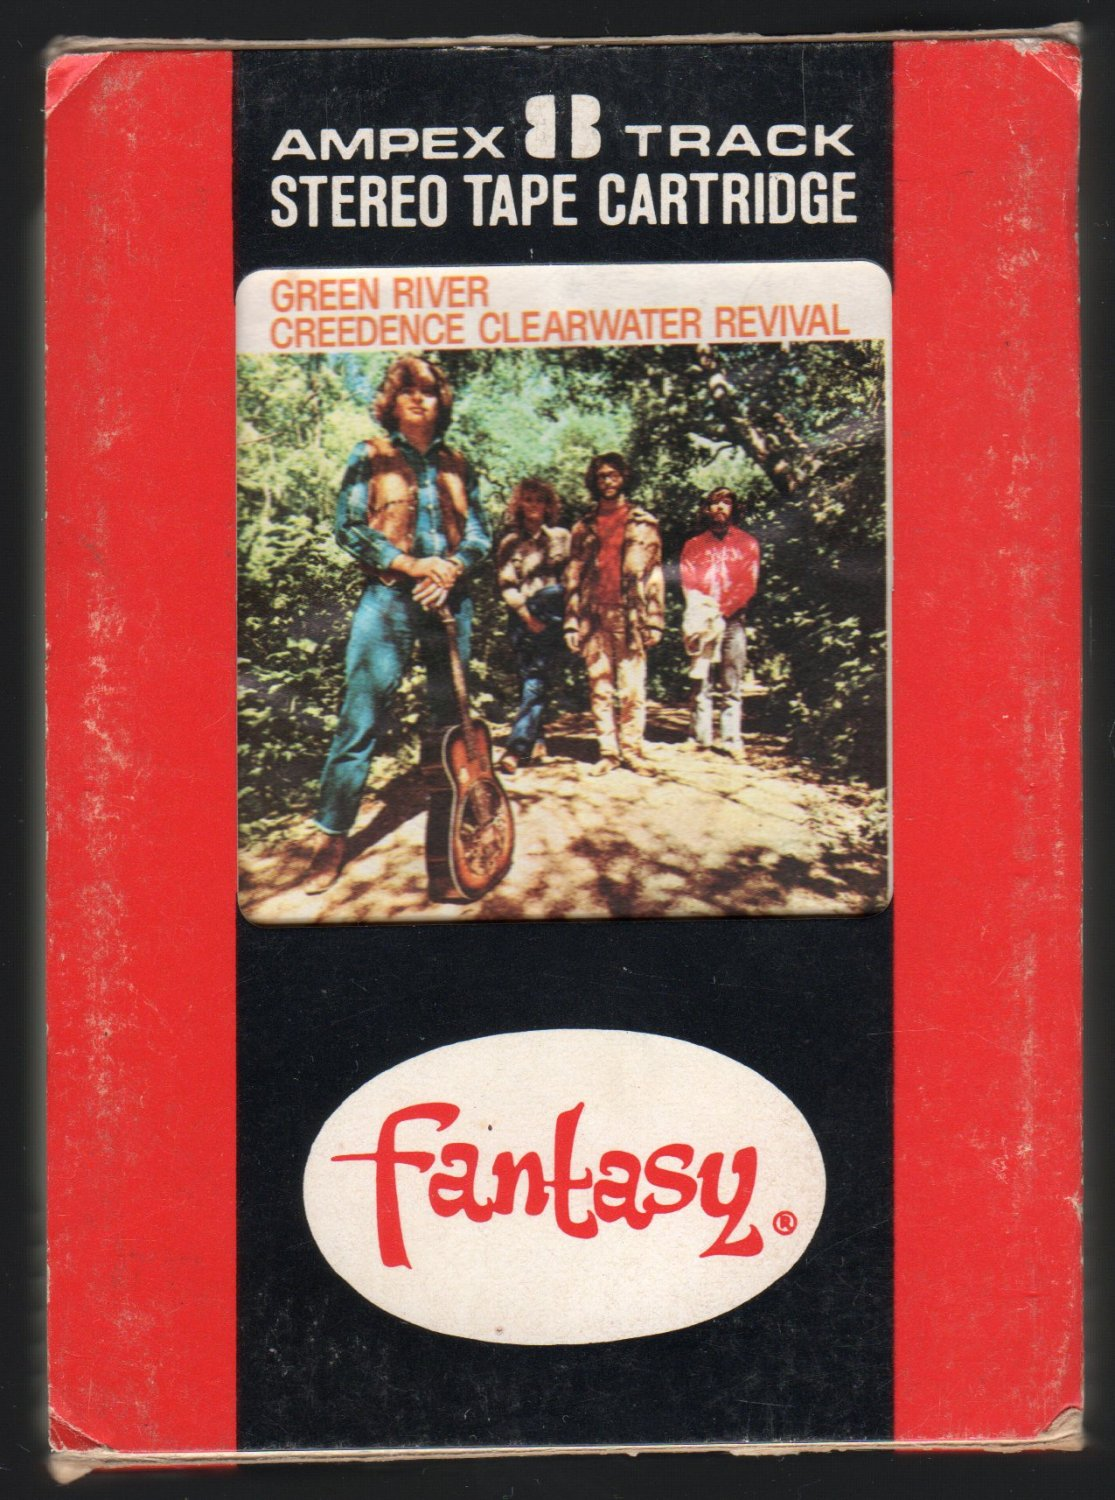 Creedence Clearwater Revival - Green River 1969 AMPEX FANTASY A43 8-TRACK TAPE